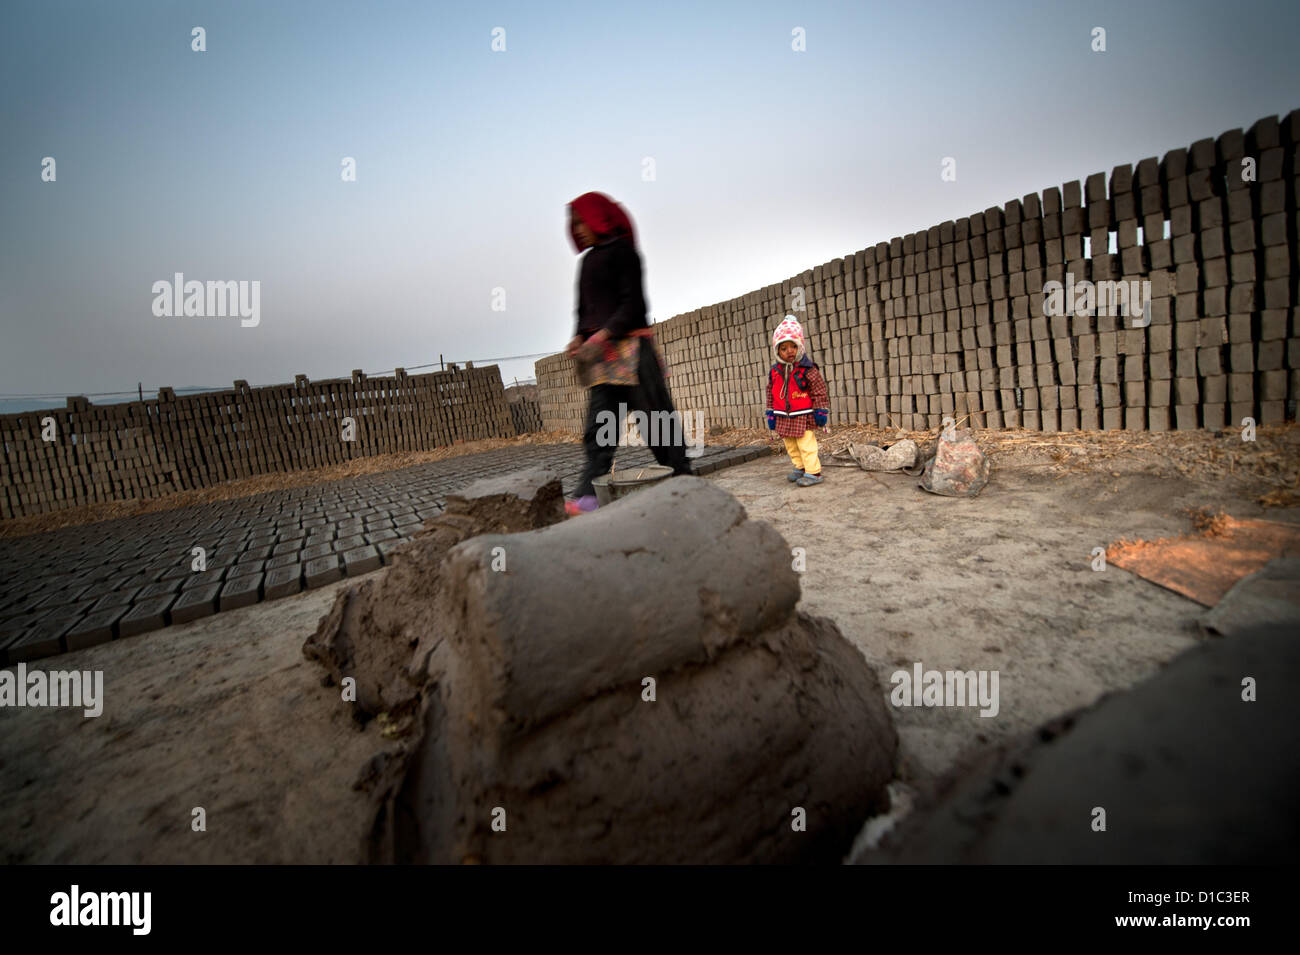 Dec. 14, 2012 - Bakthapur, bakthapur, Nepal - A child stands by the pilled bricks while his parents make bricks..In - Stock Image